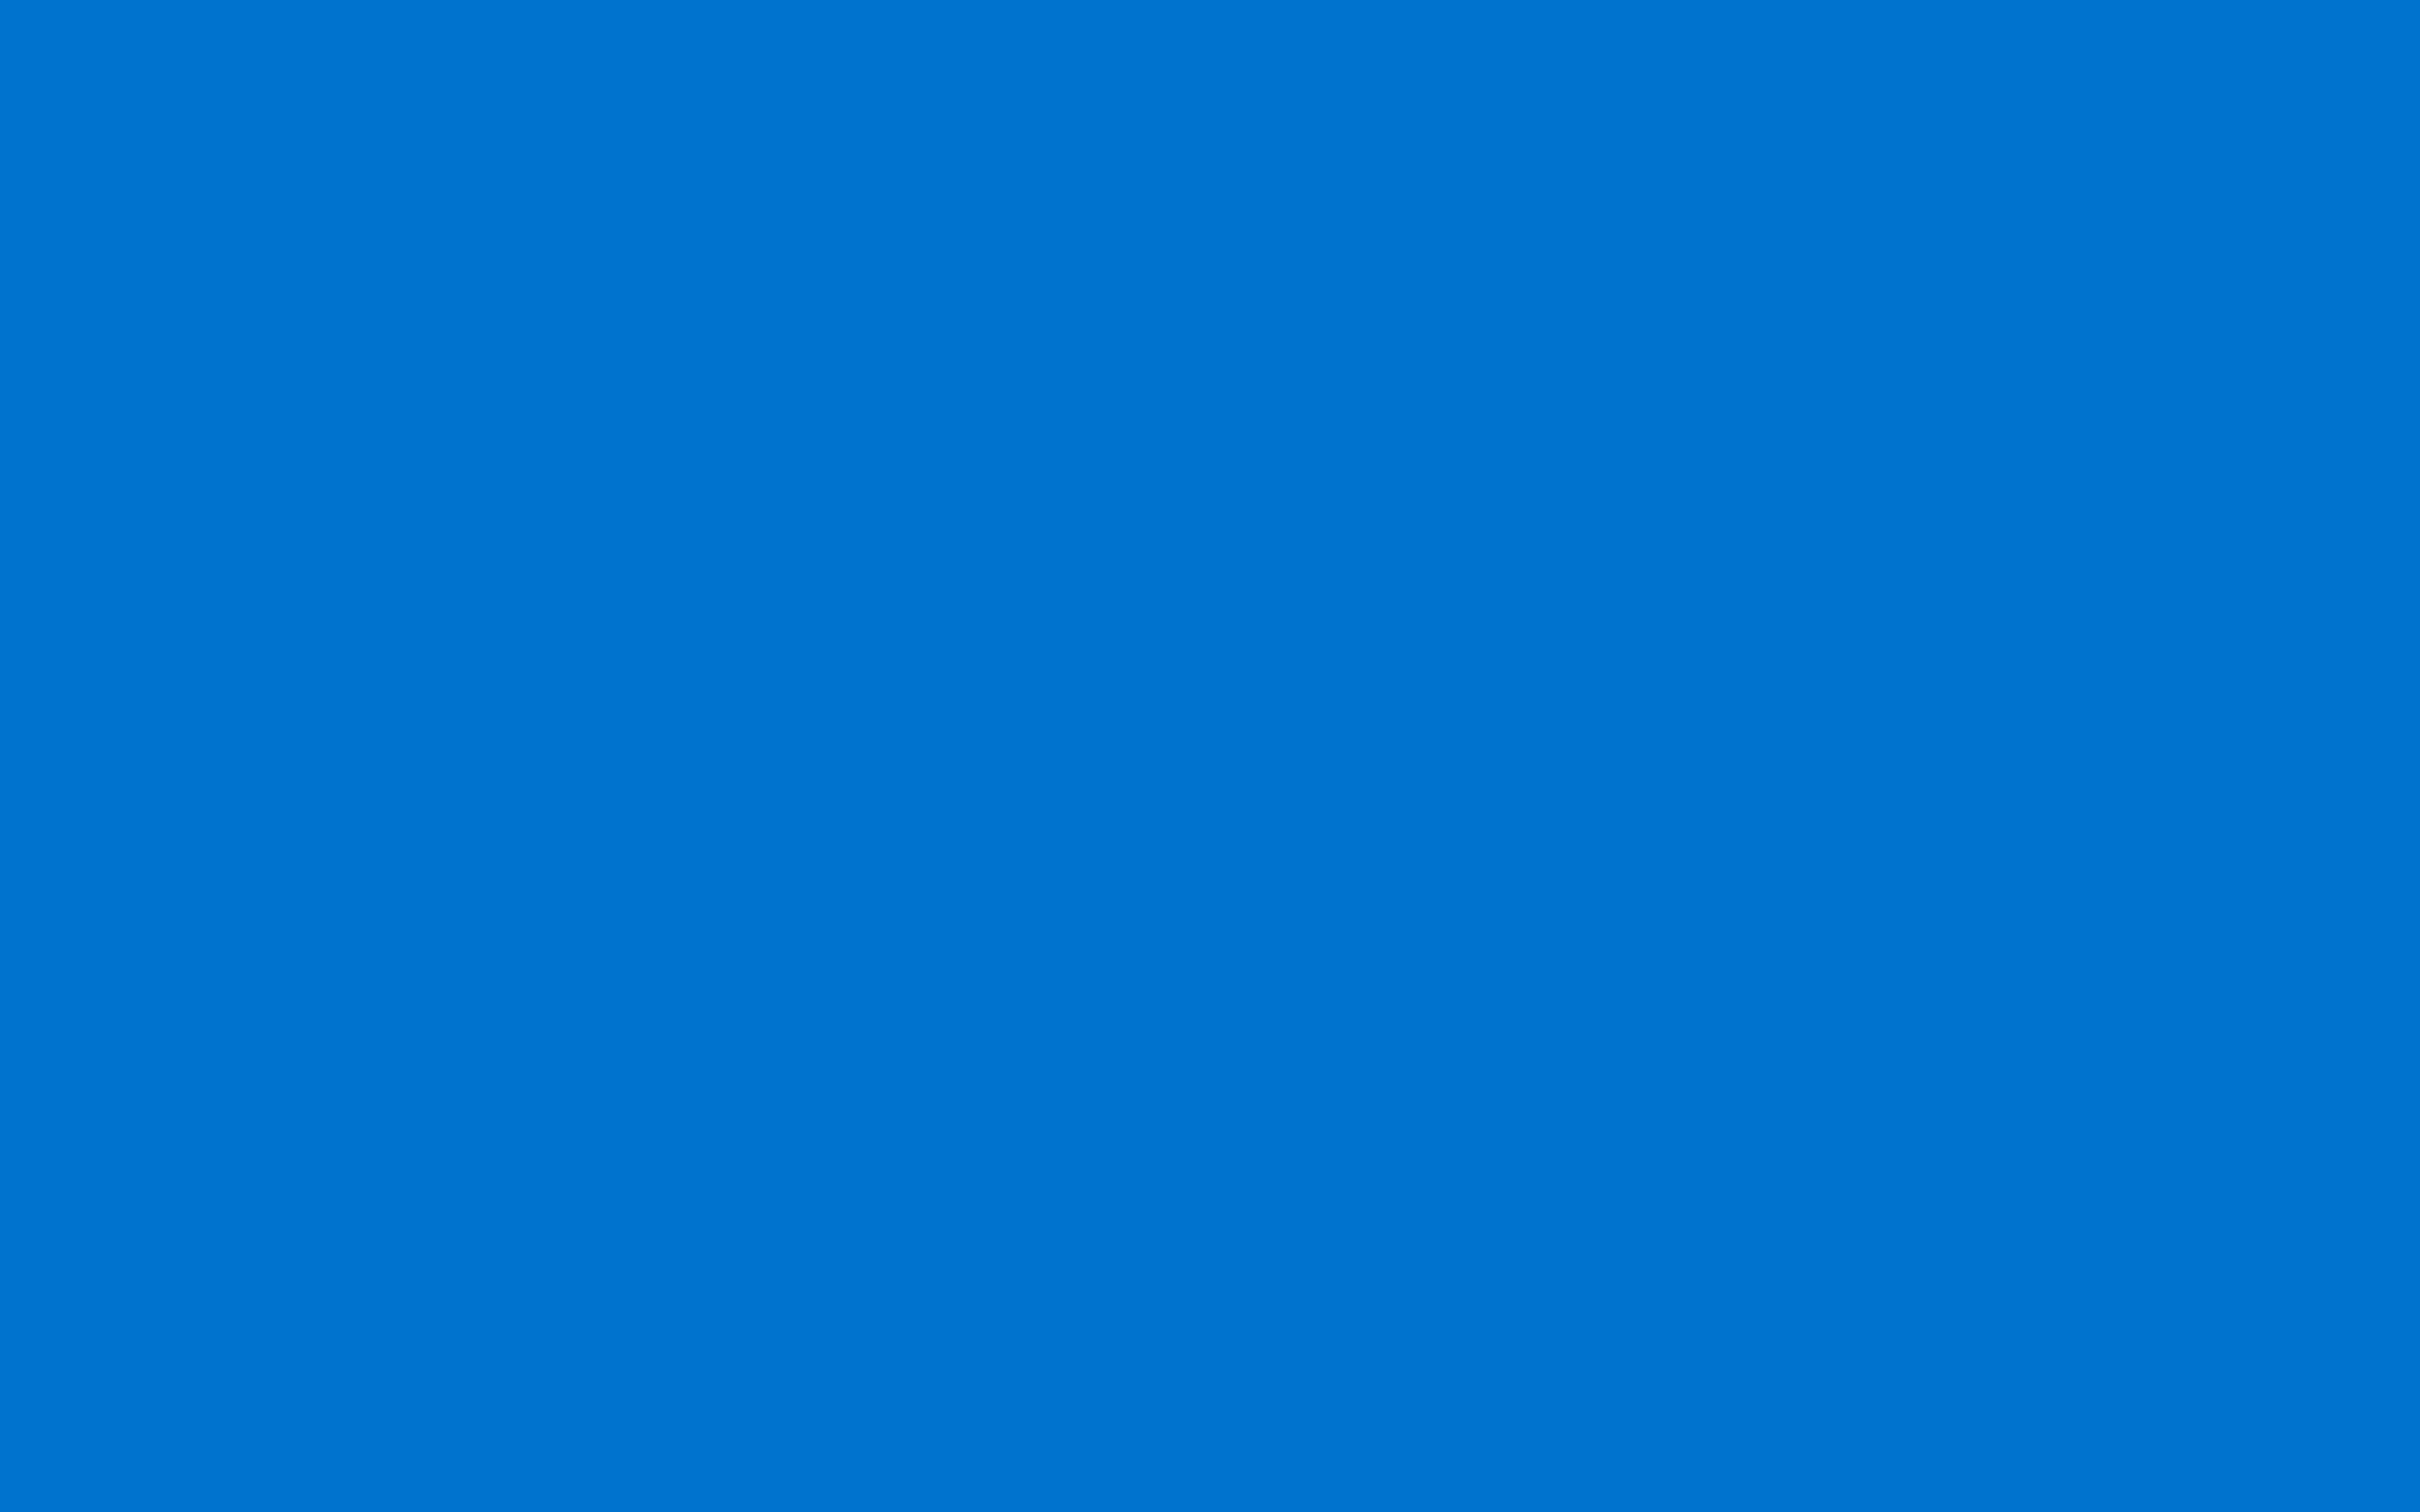 background color solid blue backgrounds images 2560x1600 2560x1600